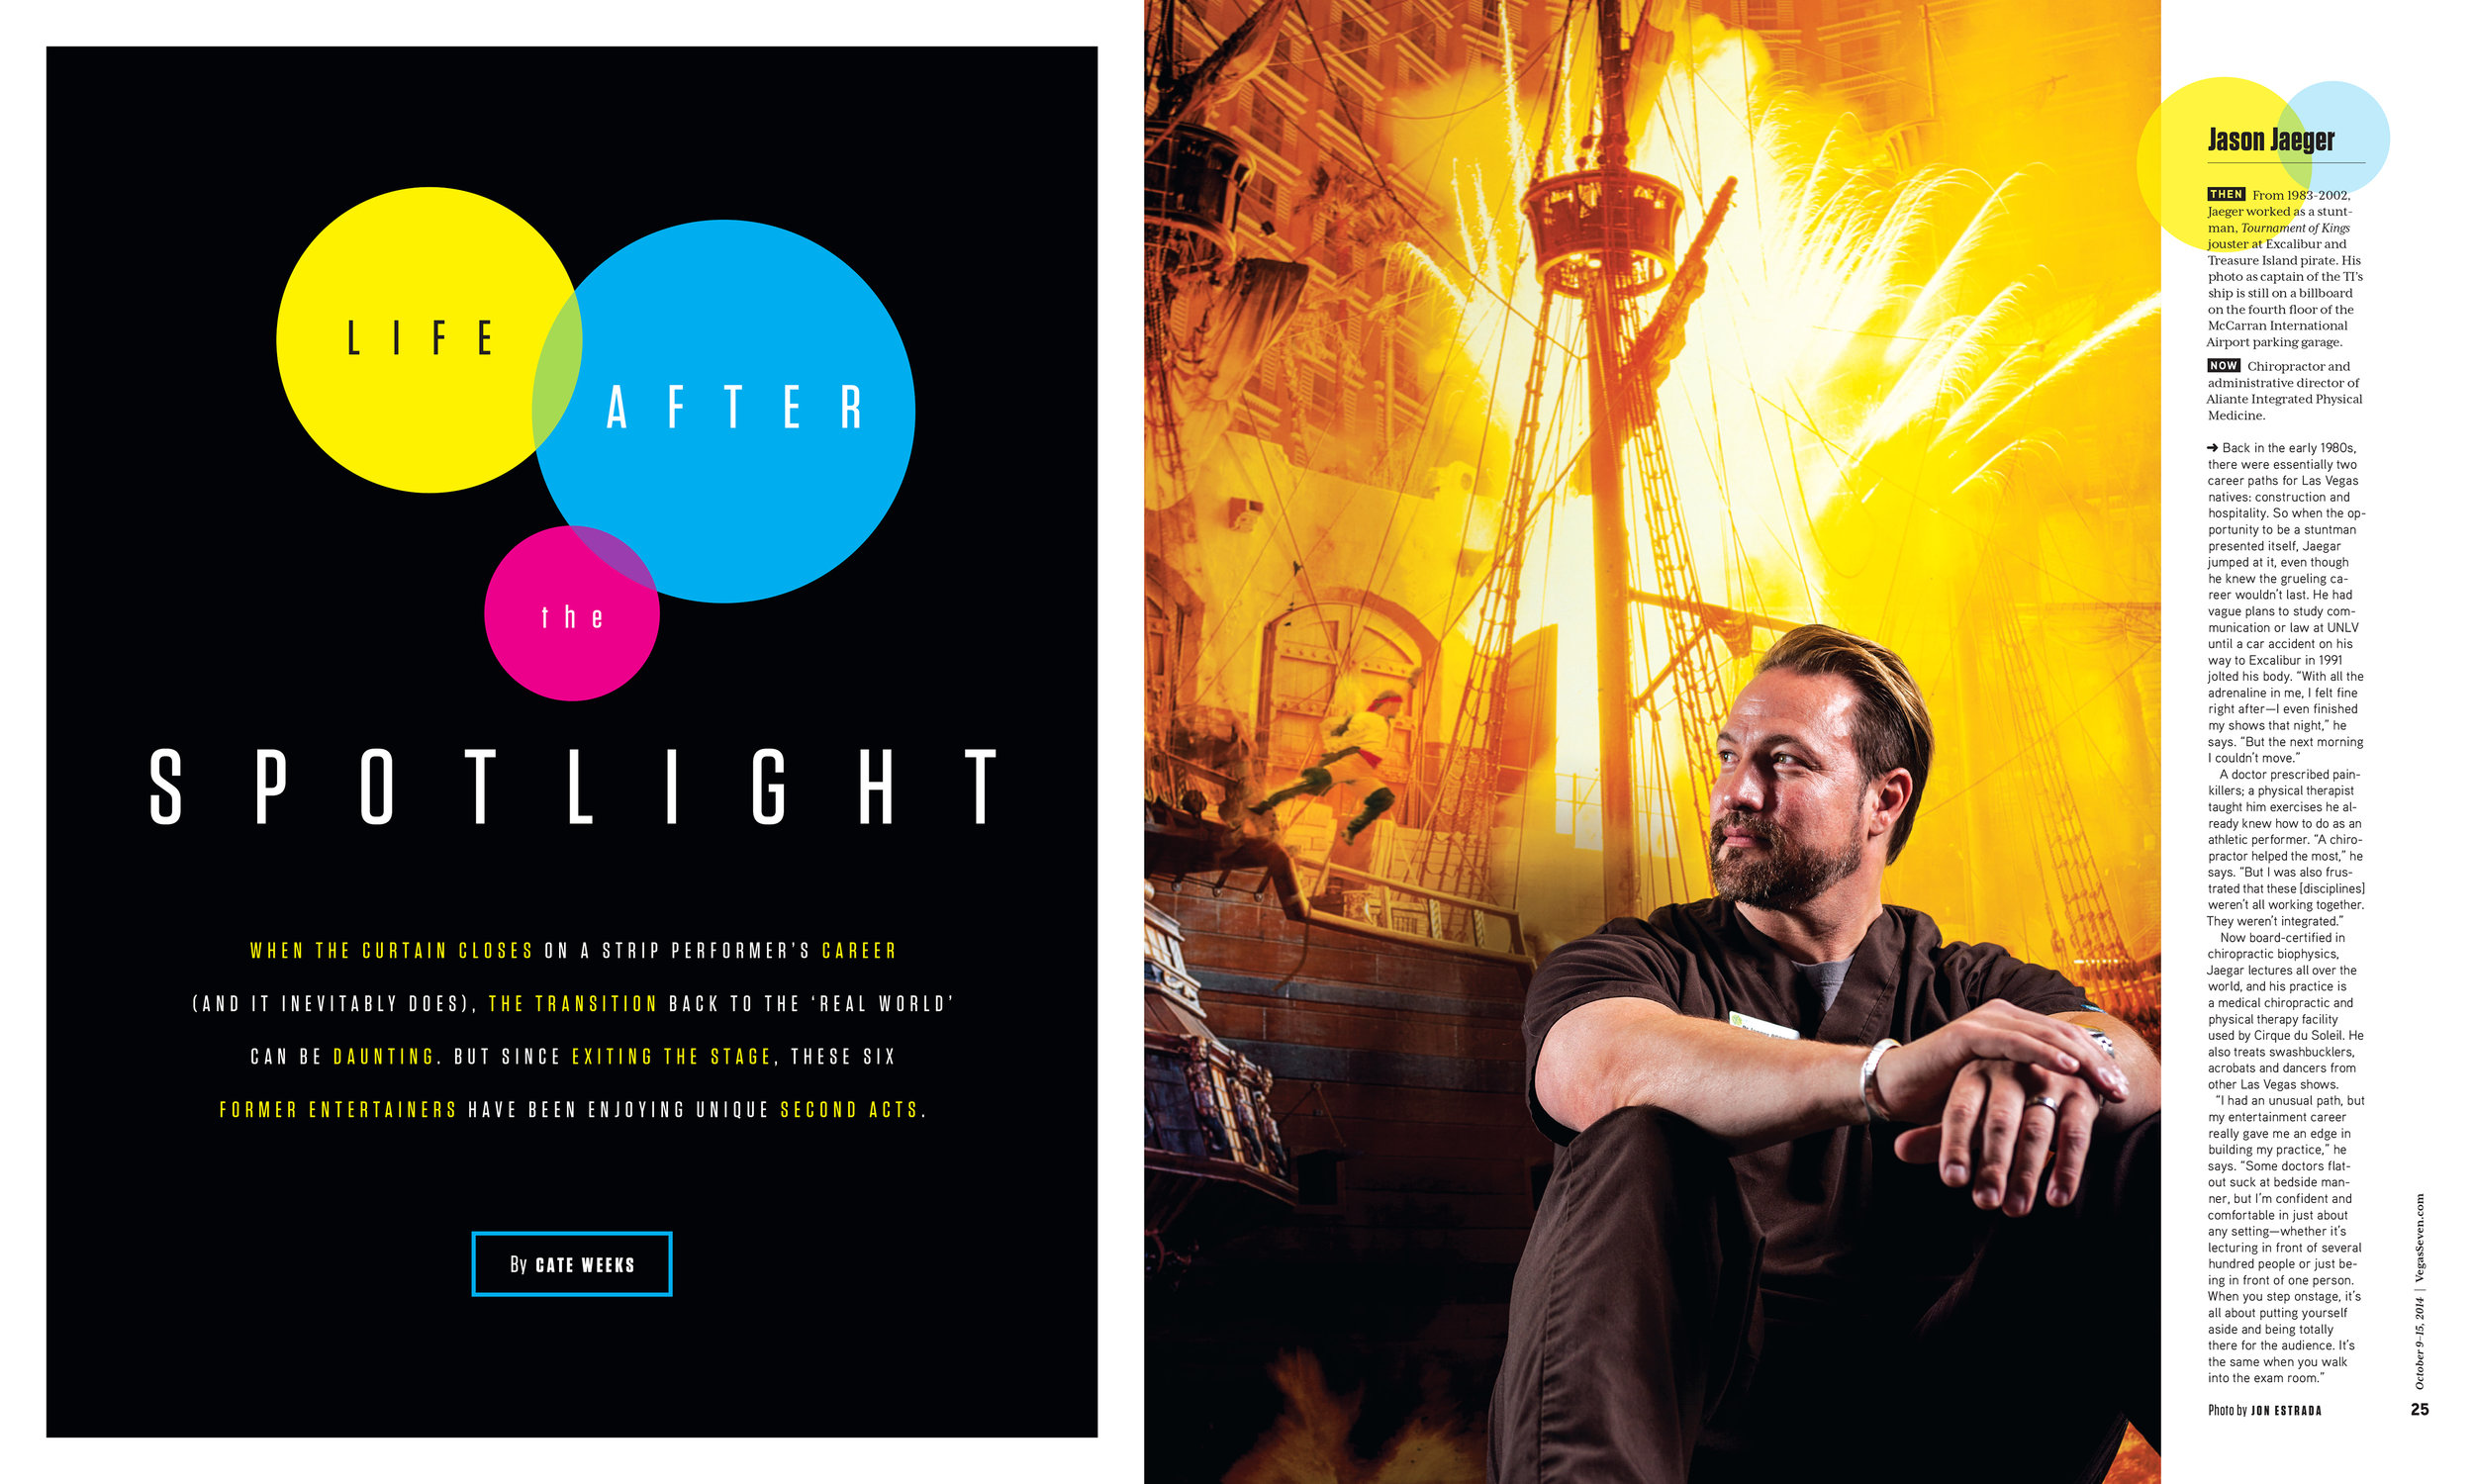 10_20141009_v7_life_after_the_spotlight_feature_01.jpg